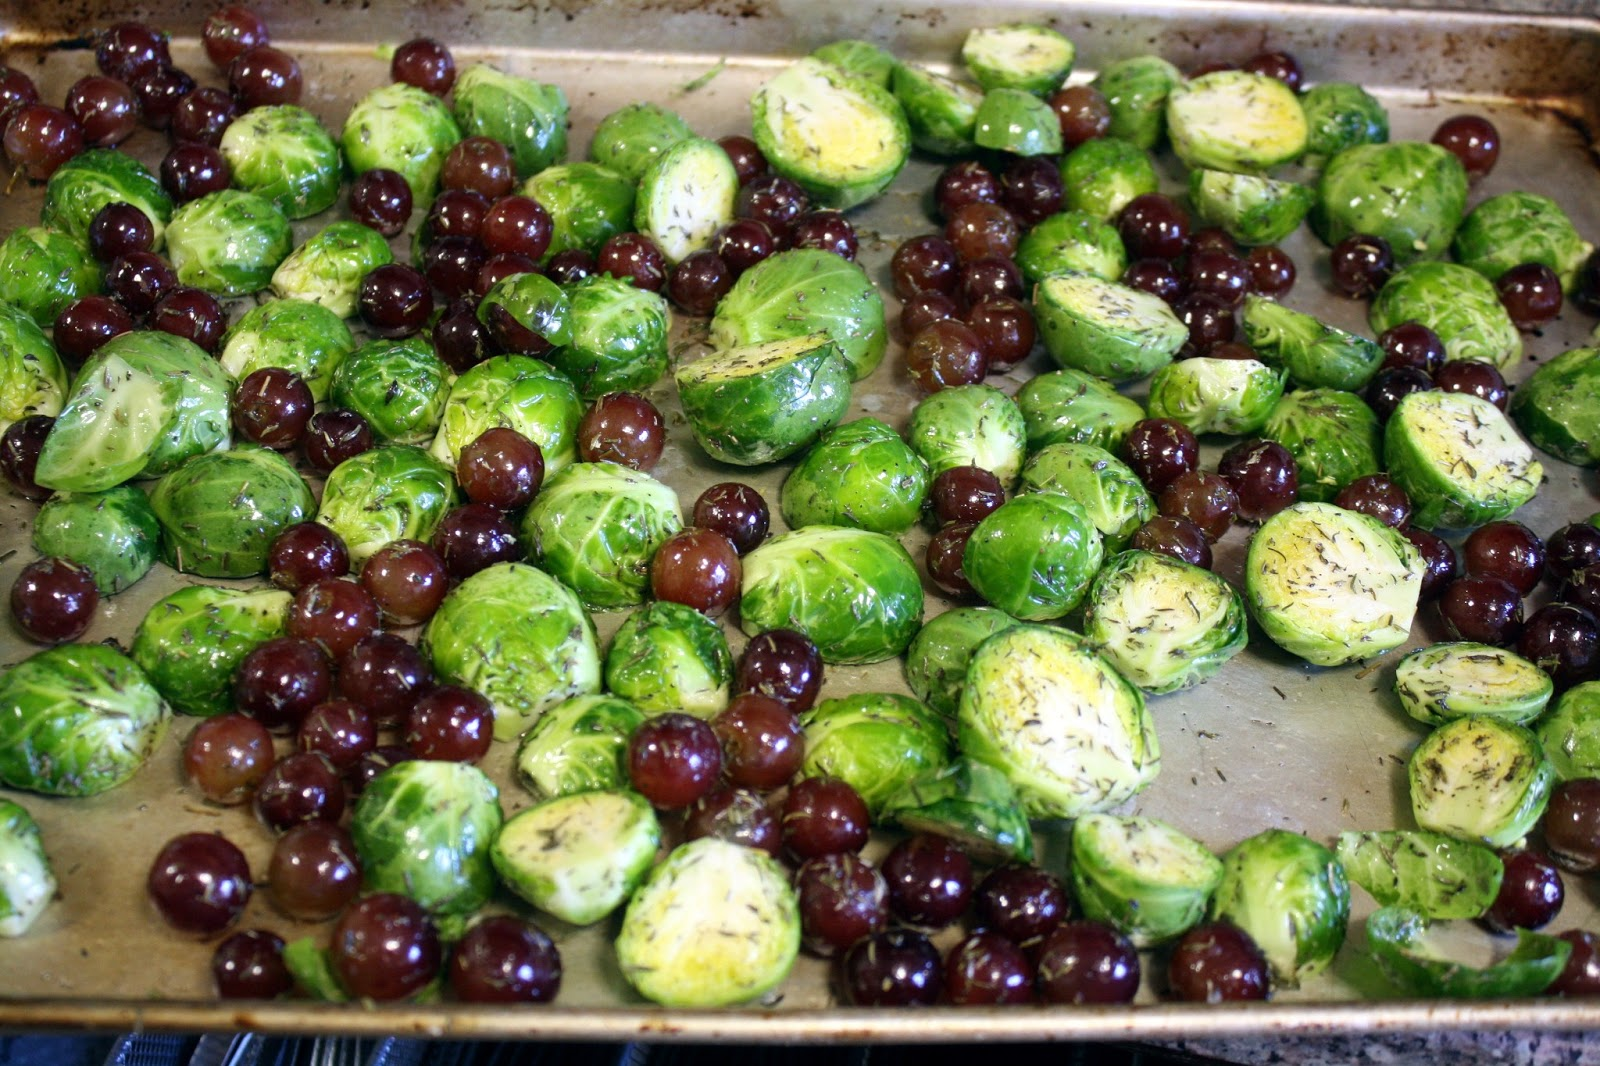 Tossed brussels sprouts and grapes on a baking sheet